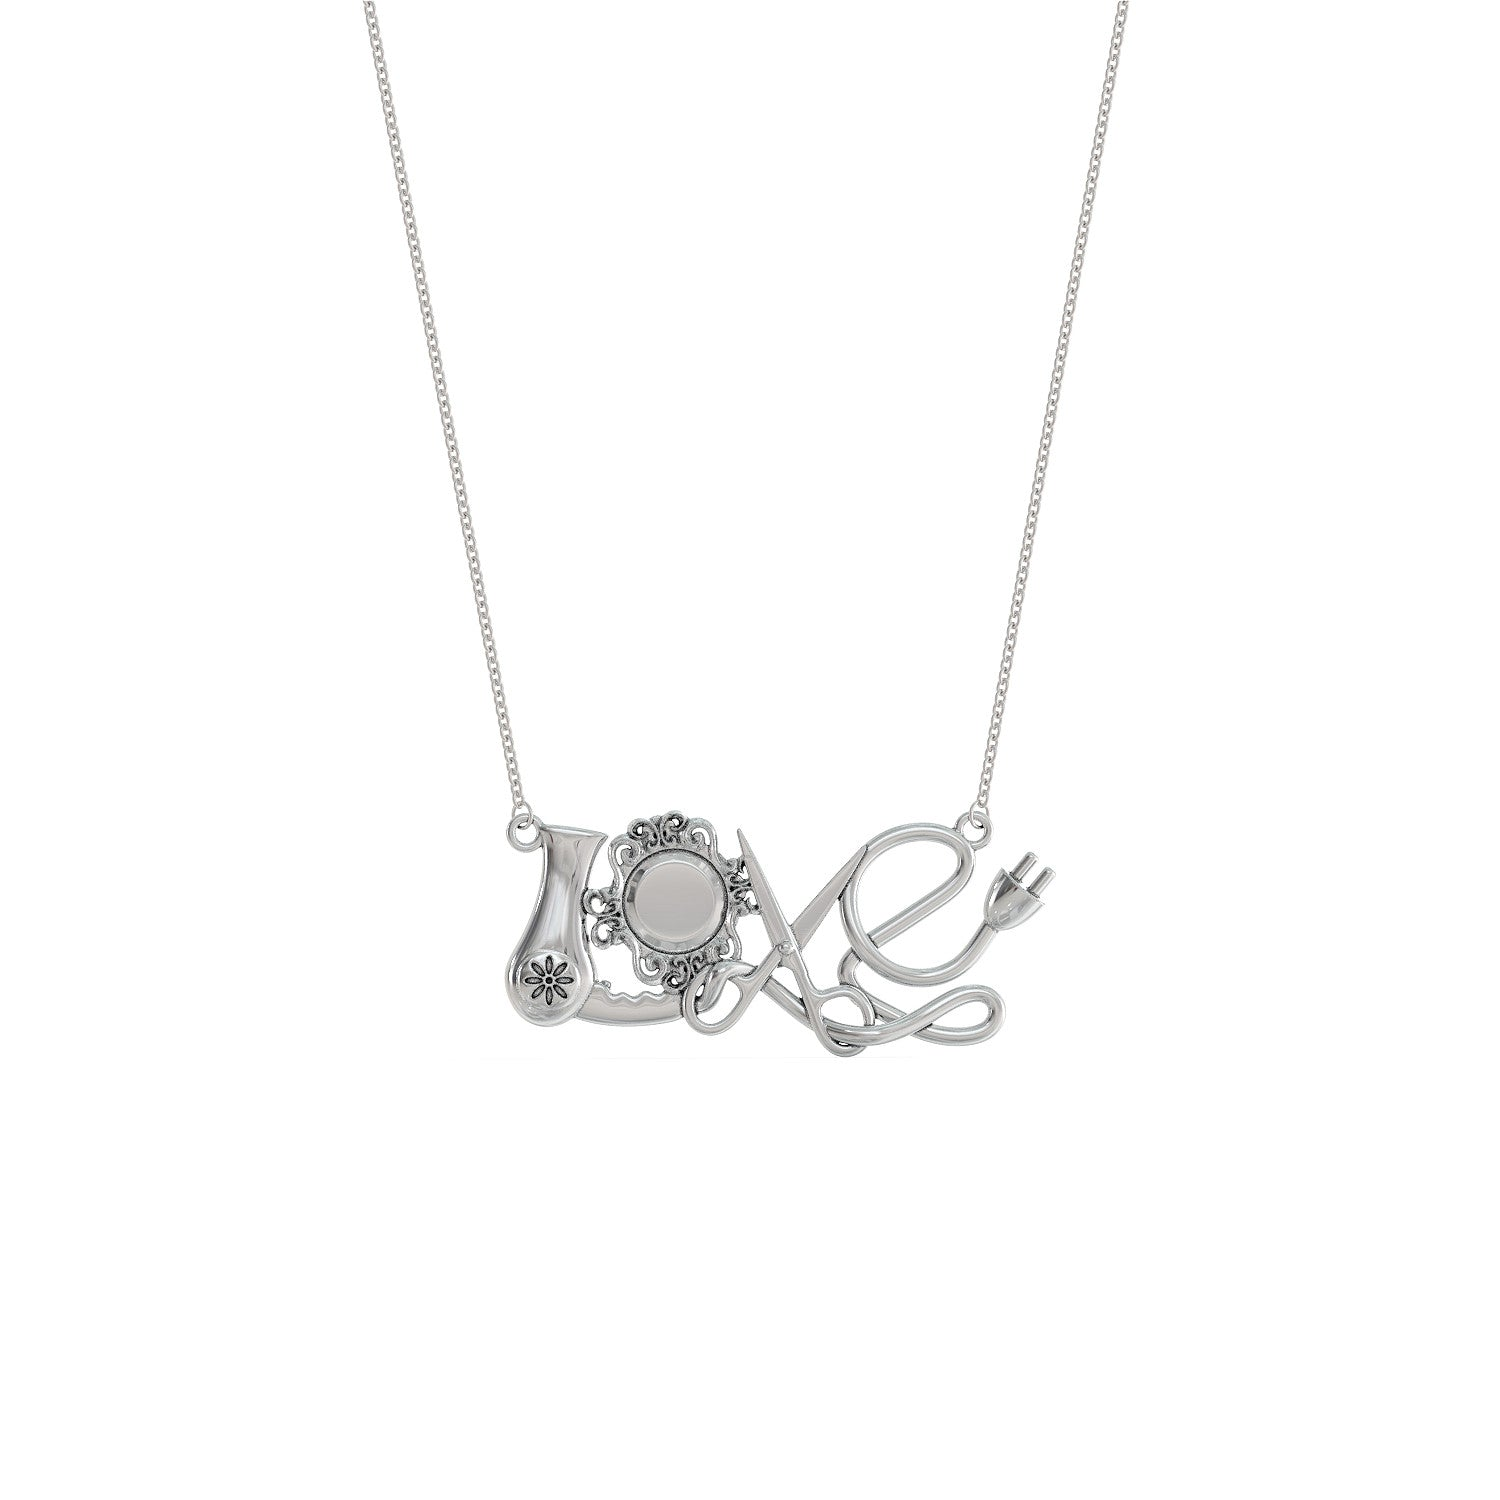 Hairdressers Love Necklace